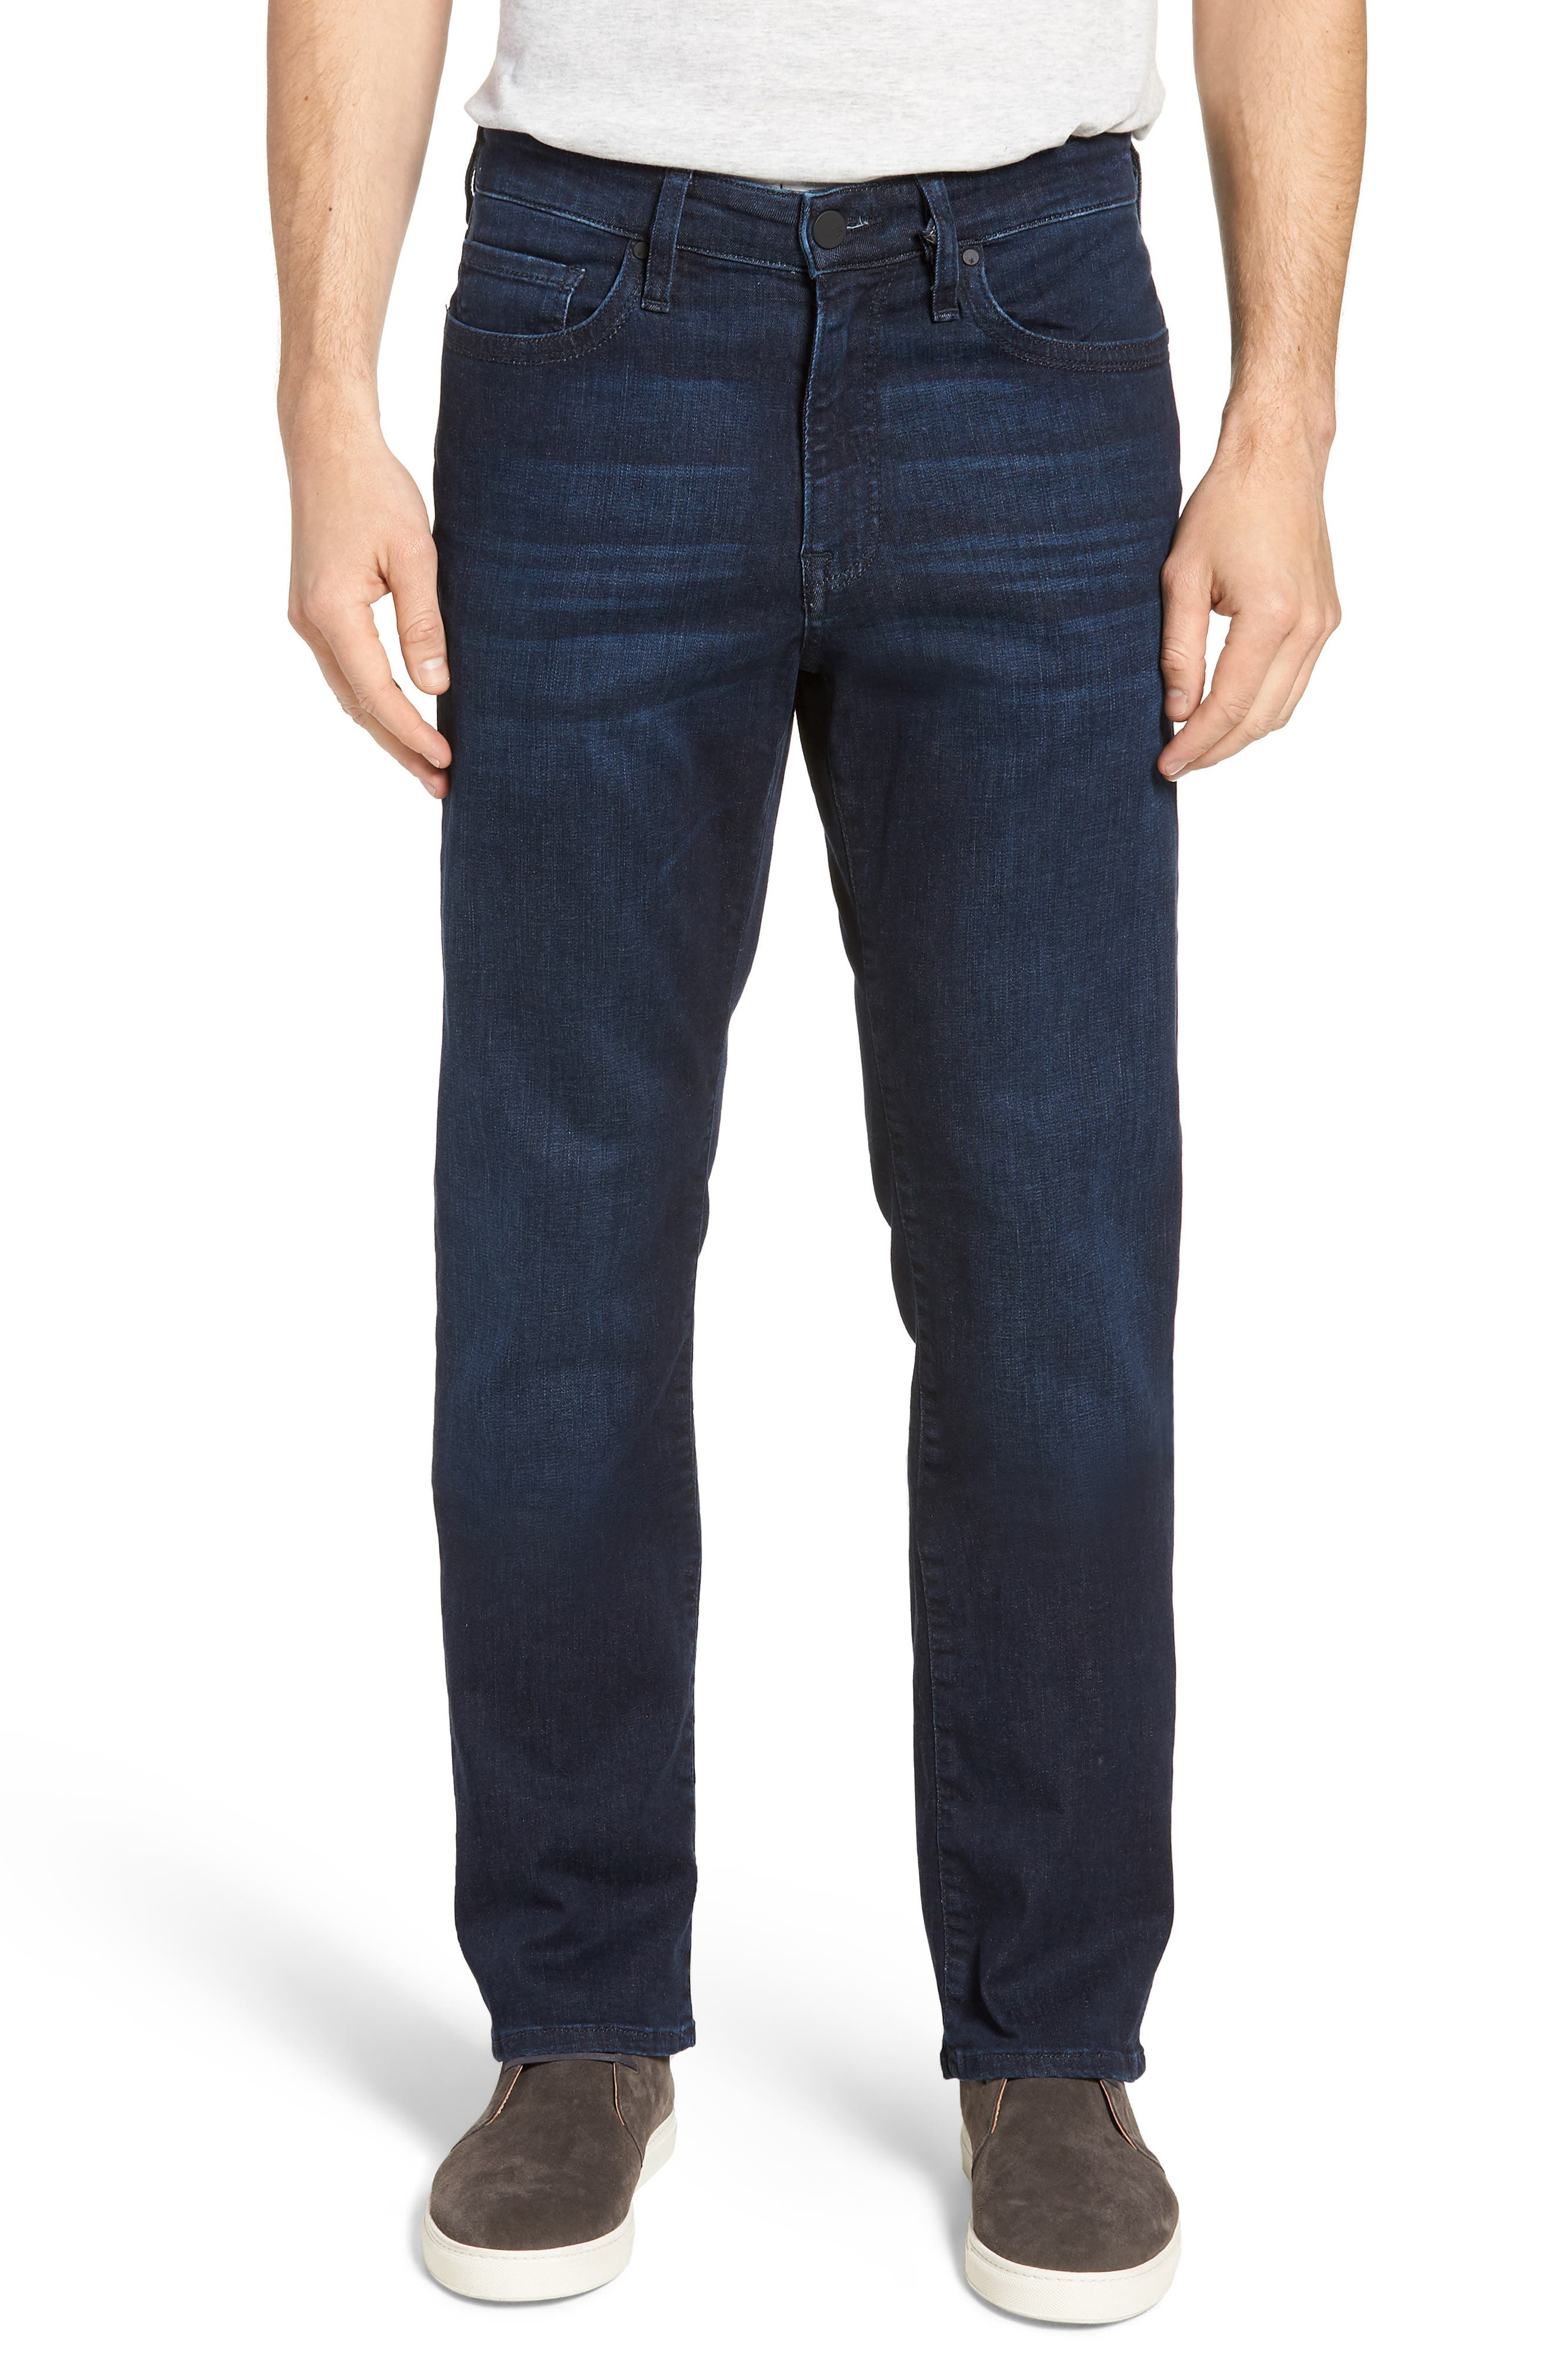 Charisma Relaxed Fit Jeans,                             Main thumbnail 1, color,                             Dark Milan